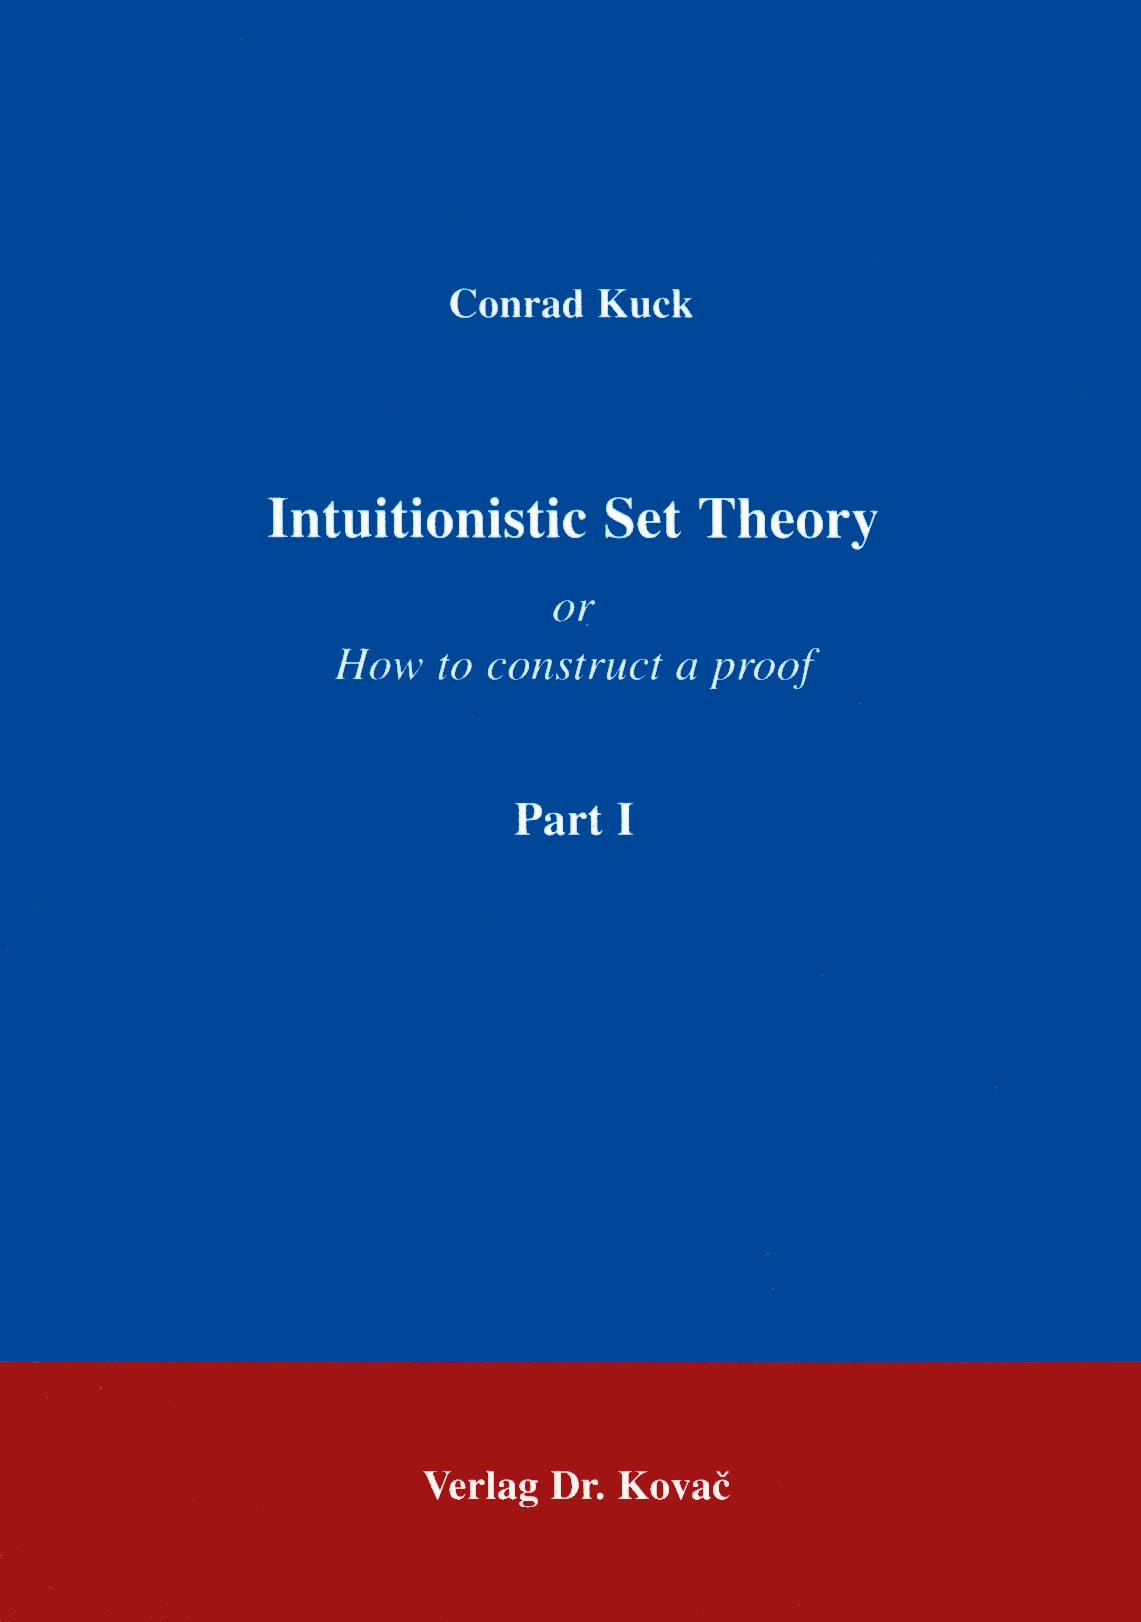 Cover: Intuitionistic Set Theory Part I